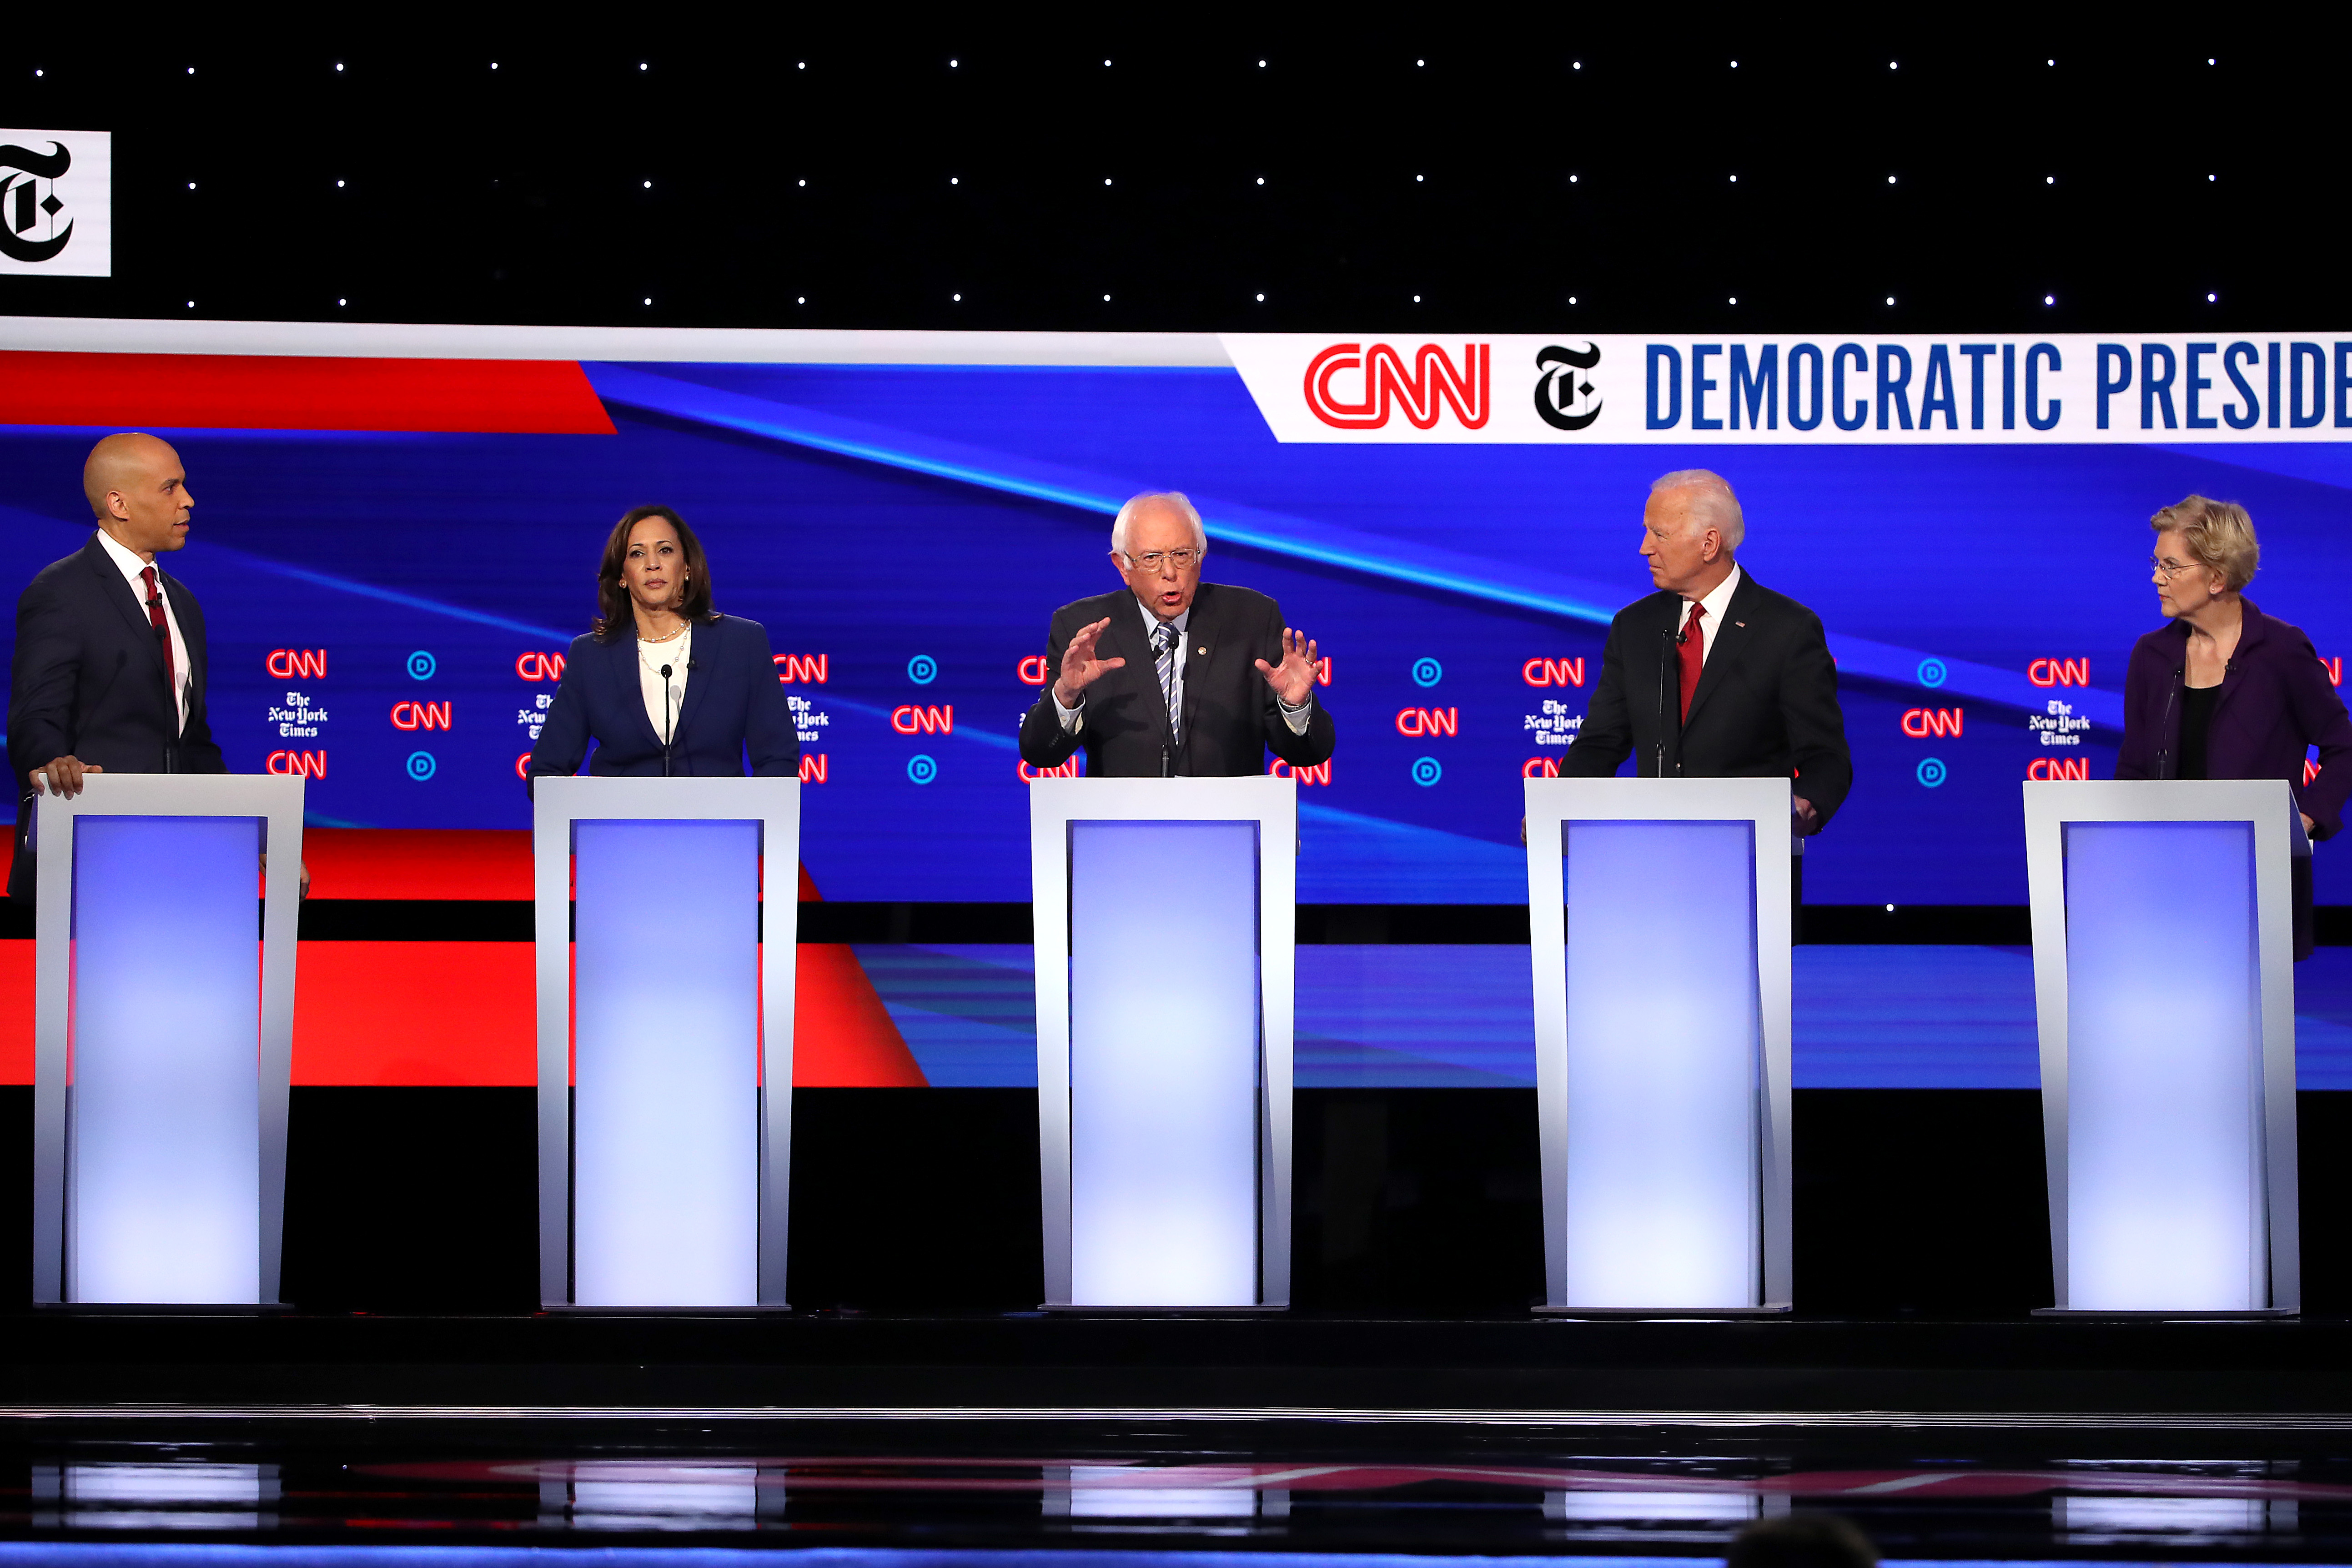 WESTERVILLE, OHIO - OCTOBER 15: Sen. Cory Booker (D-NJ), Sen. Kamala Harris (D-CA), Sen. Bernie Sanders (I-VT), former Vice President Joe Biden, and Sen. Elizabeth Warren (D-MA) interact during the Democratic Presidential Debate at Otterbein University on October 15, 2019 in Westerville, Ohio. A record 12 presidential hopefuls are participating in the debate hosted by CNN and The New York Times. (Photo by Win McNamee/Getty Images